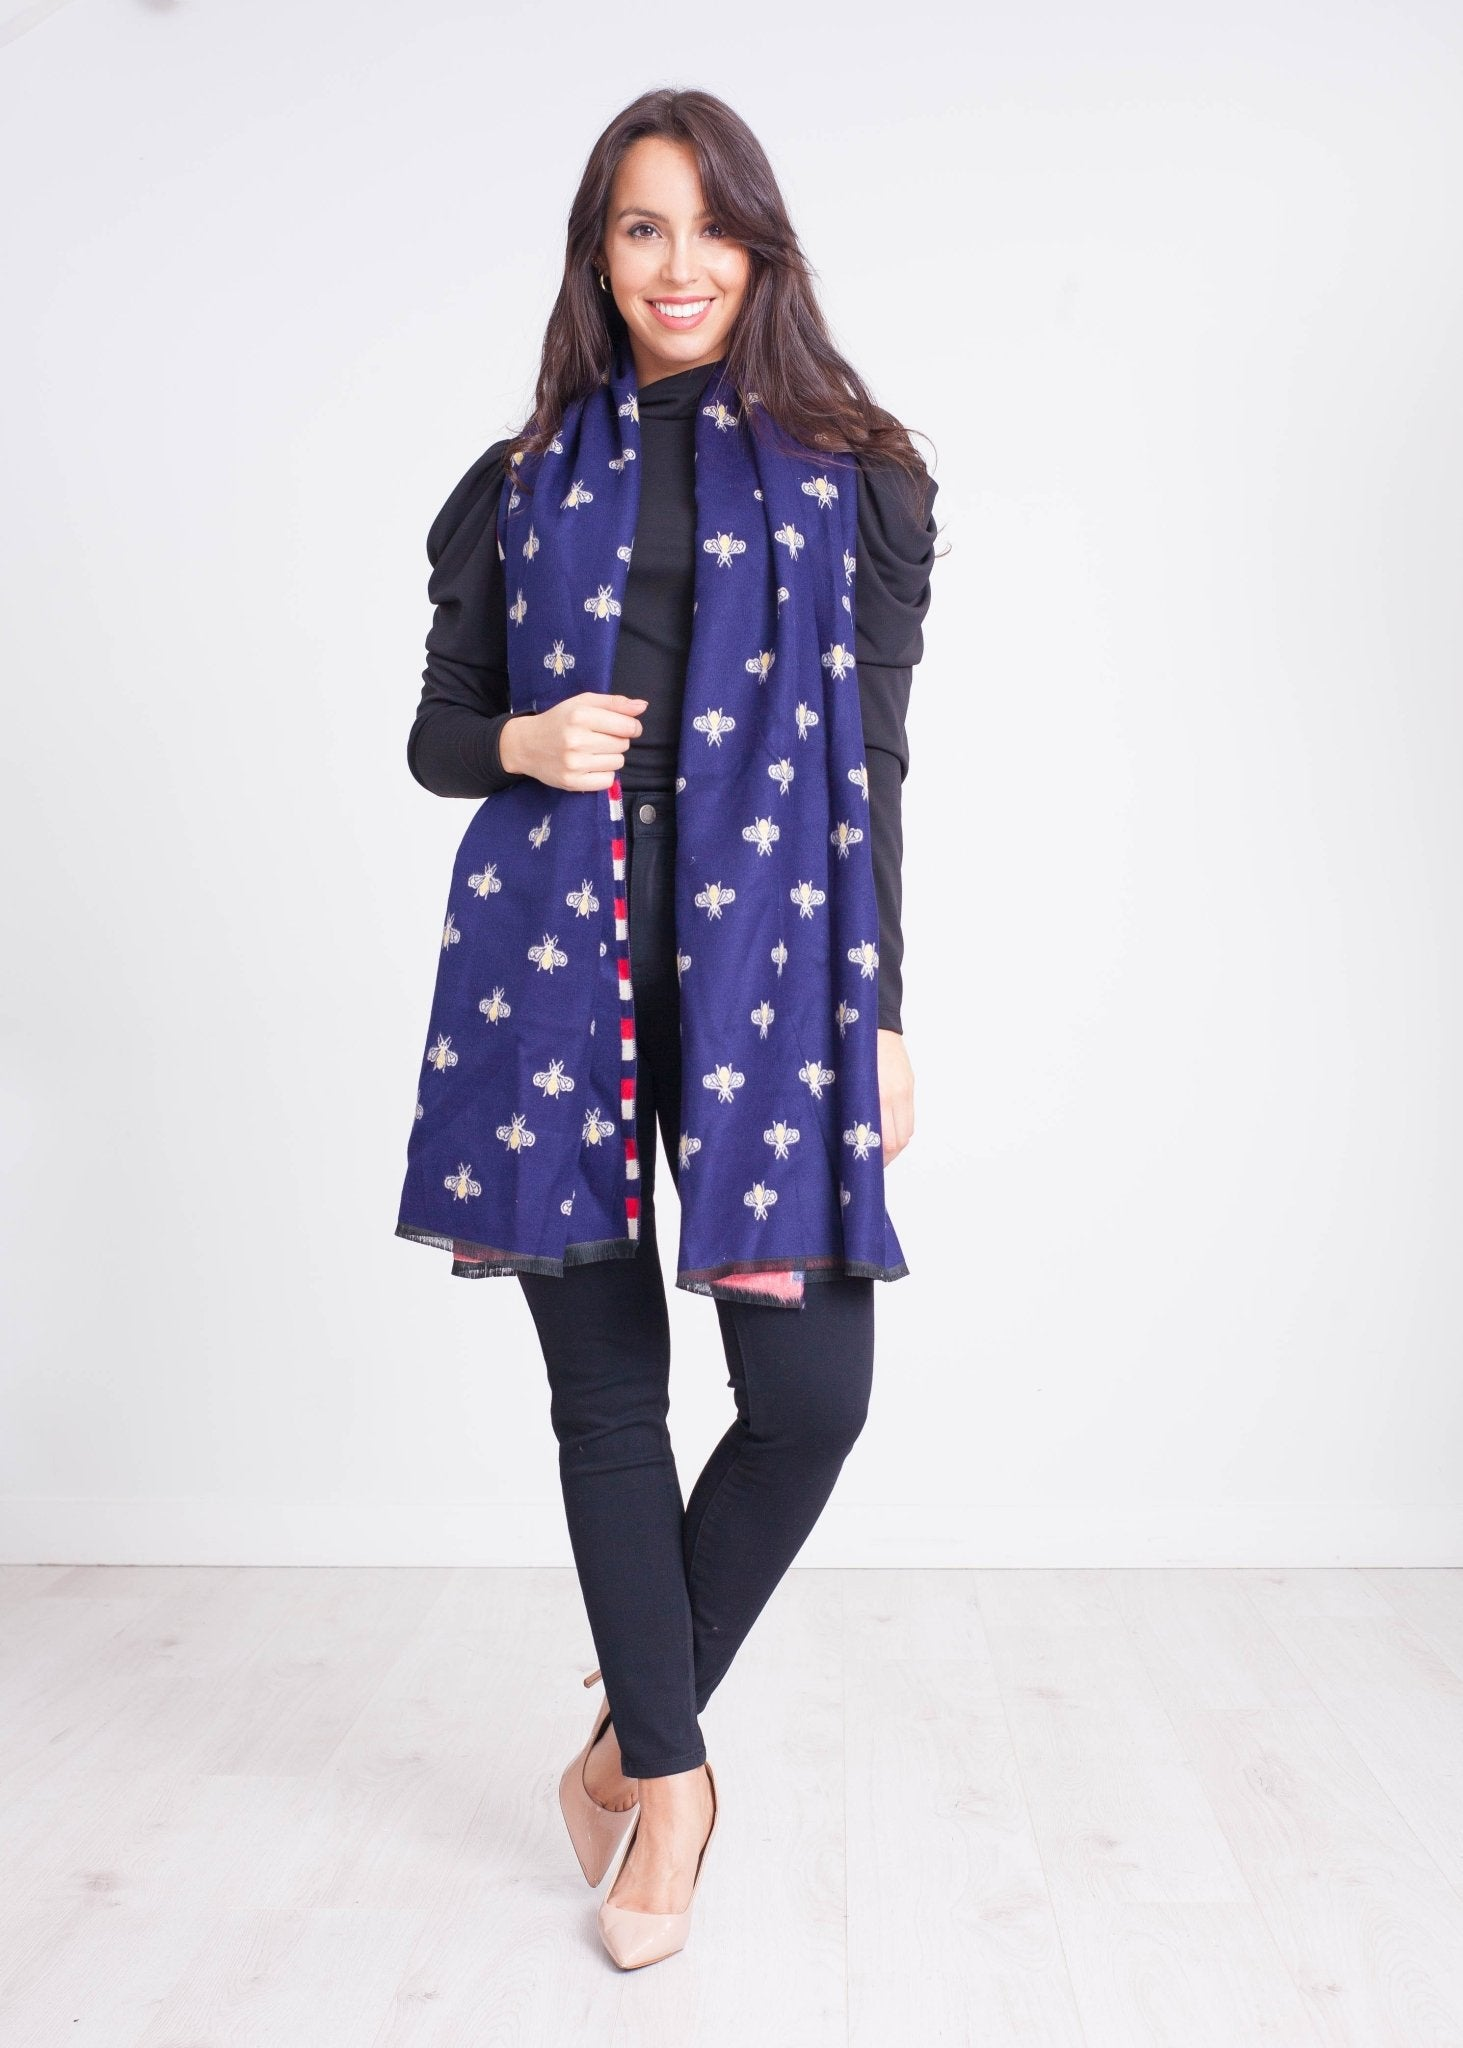 Emilia Bee Scarf In Navy - The Walk in Wardrobe